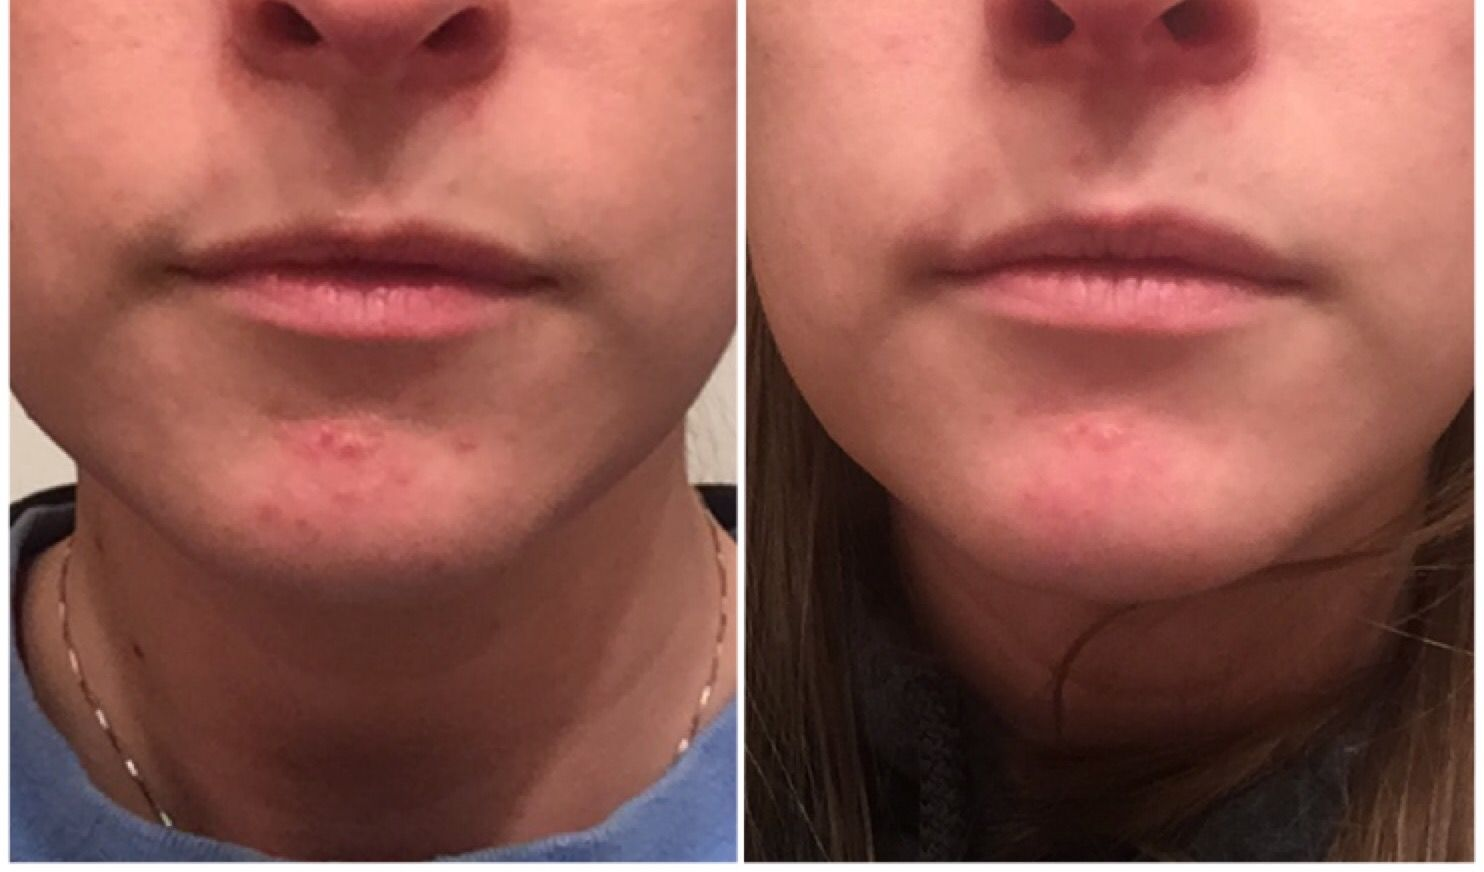 Perioral Dermatitis Products: My Favorites for Your Skin